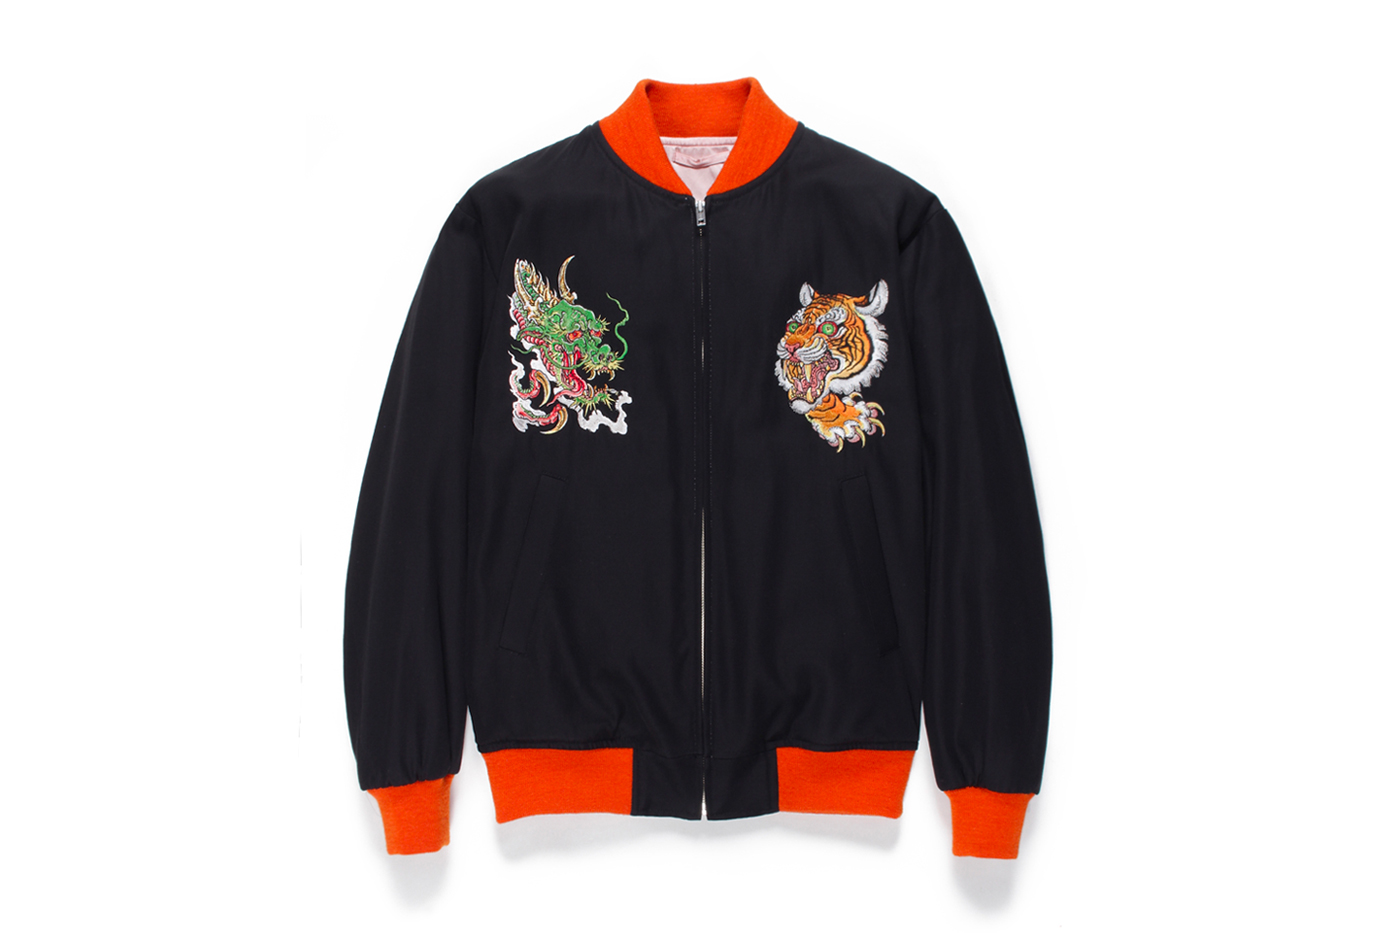 Tim Lehi WACKO MARIA Spring/Summer 2020 Embroidered Vietnam souvenir Jackets collection capsule menswear streetwear collaborations tattoo artist american japanese outerwear embroidery motif traditional artwork